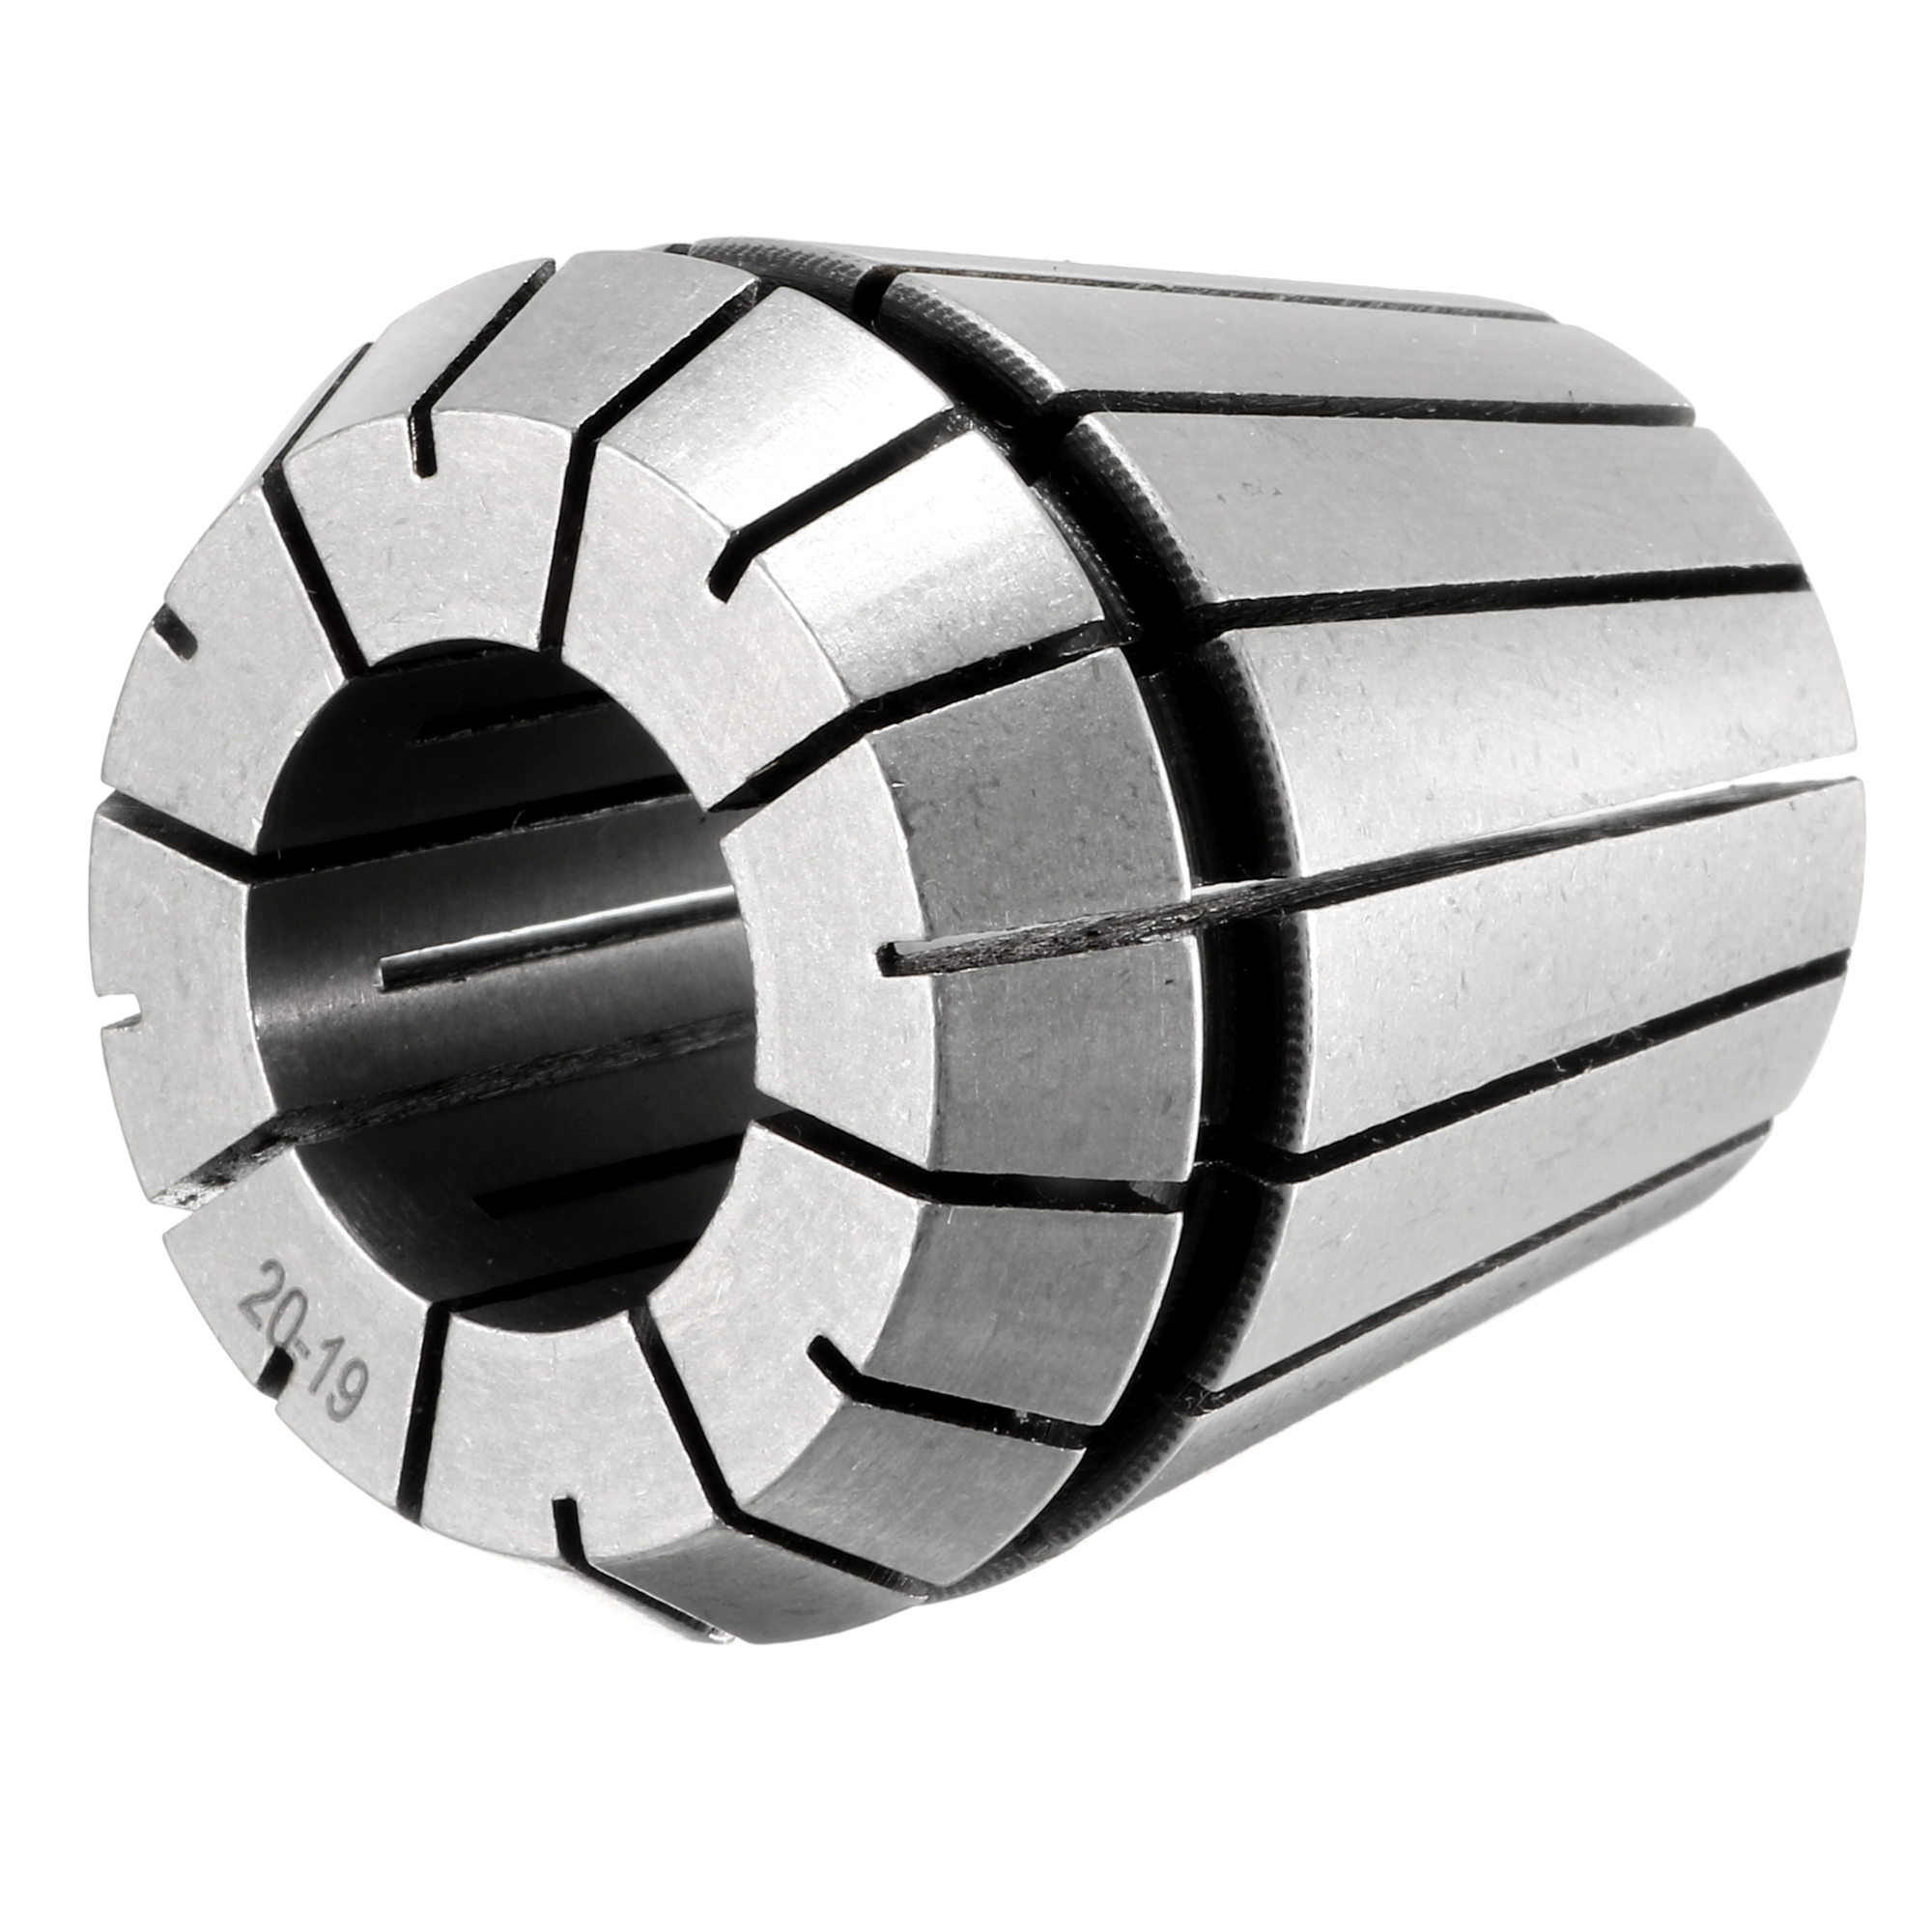 ER40 20mm Spring Collet Chuck for CNC Engraving Machine Lathe Milling Tool - image 3 of 3